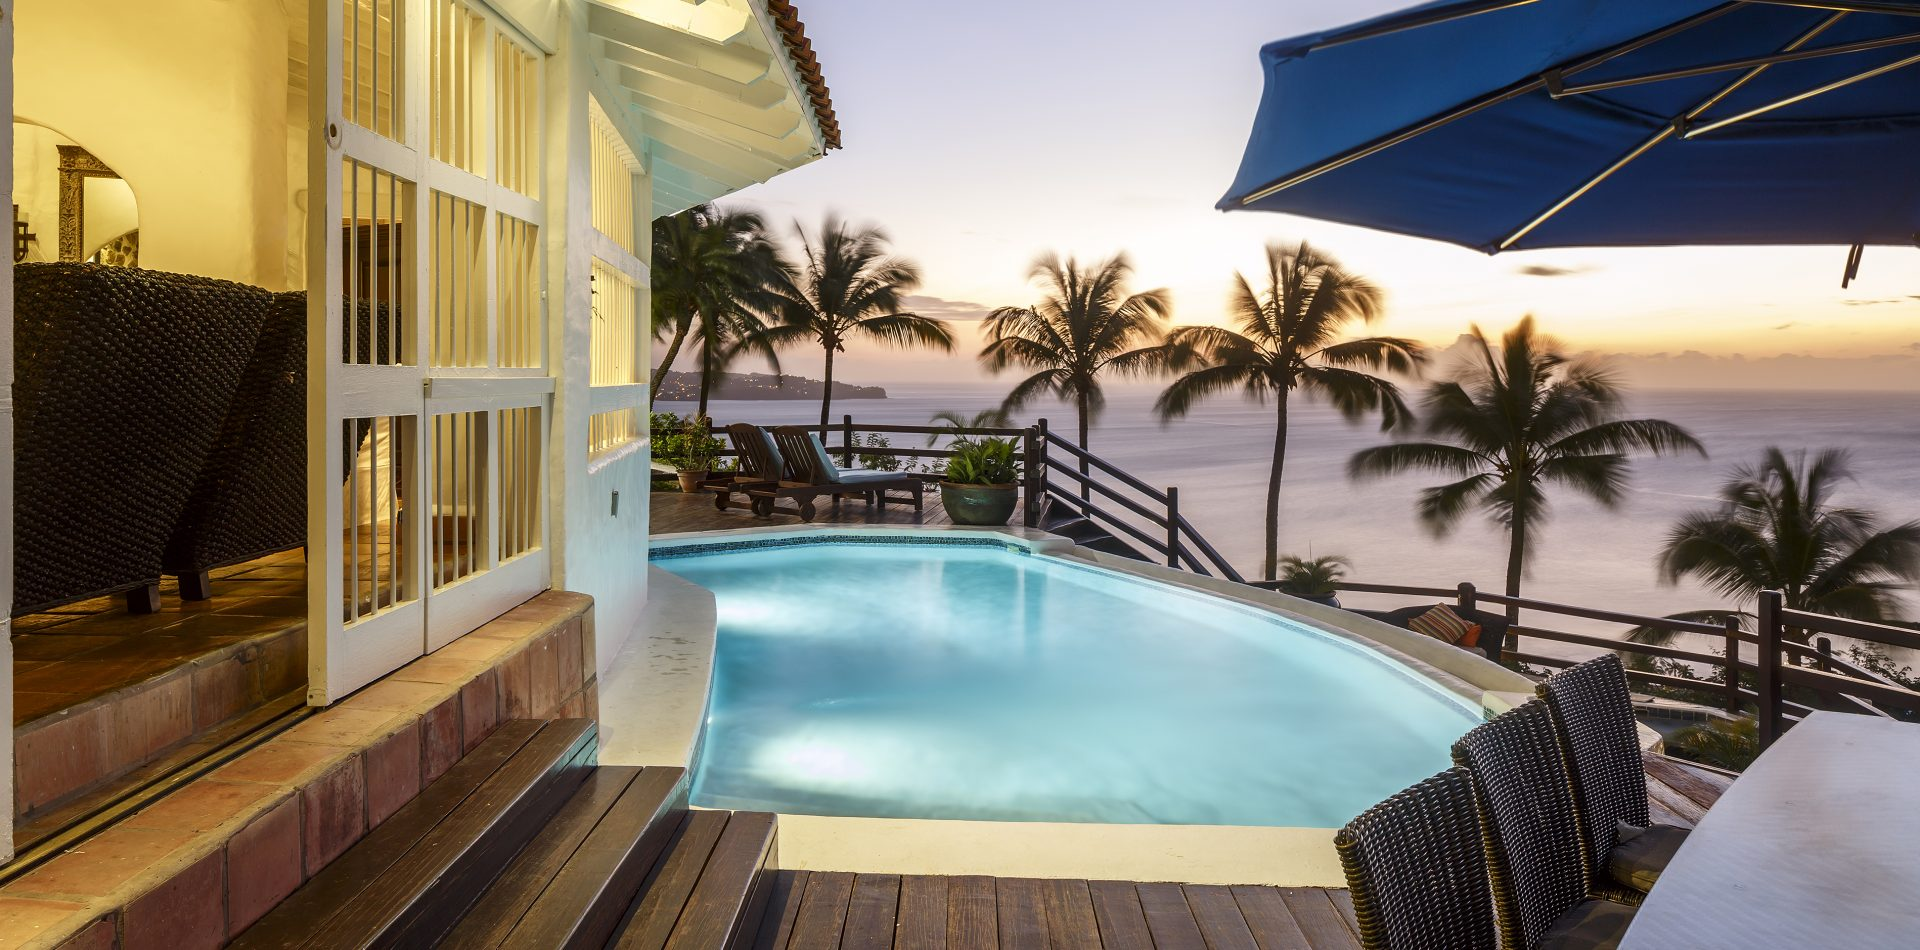 outdoor pool area and balcony at 5 bedroom estate villa in St Lucia